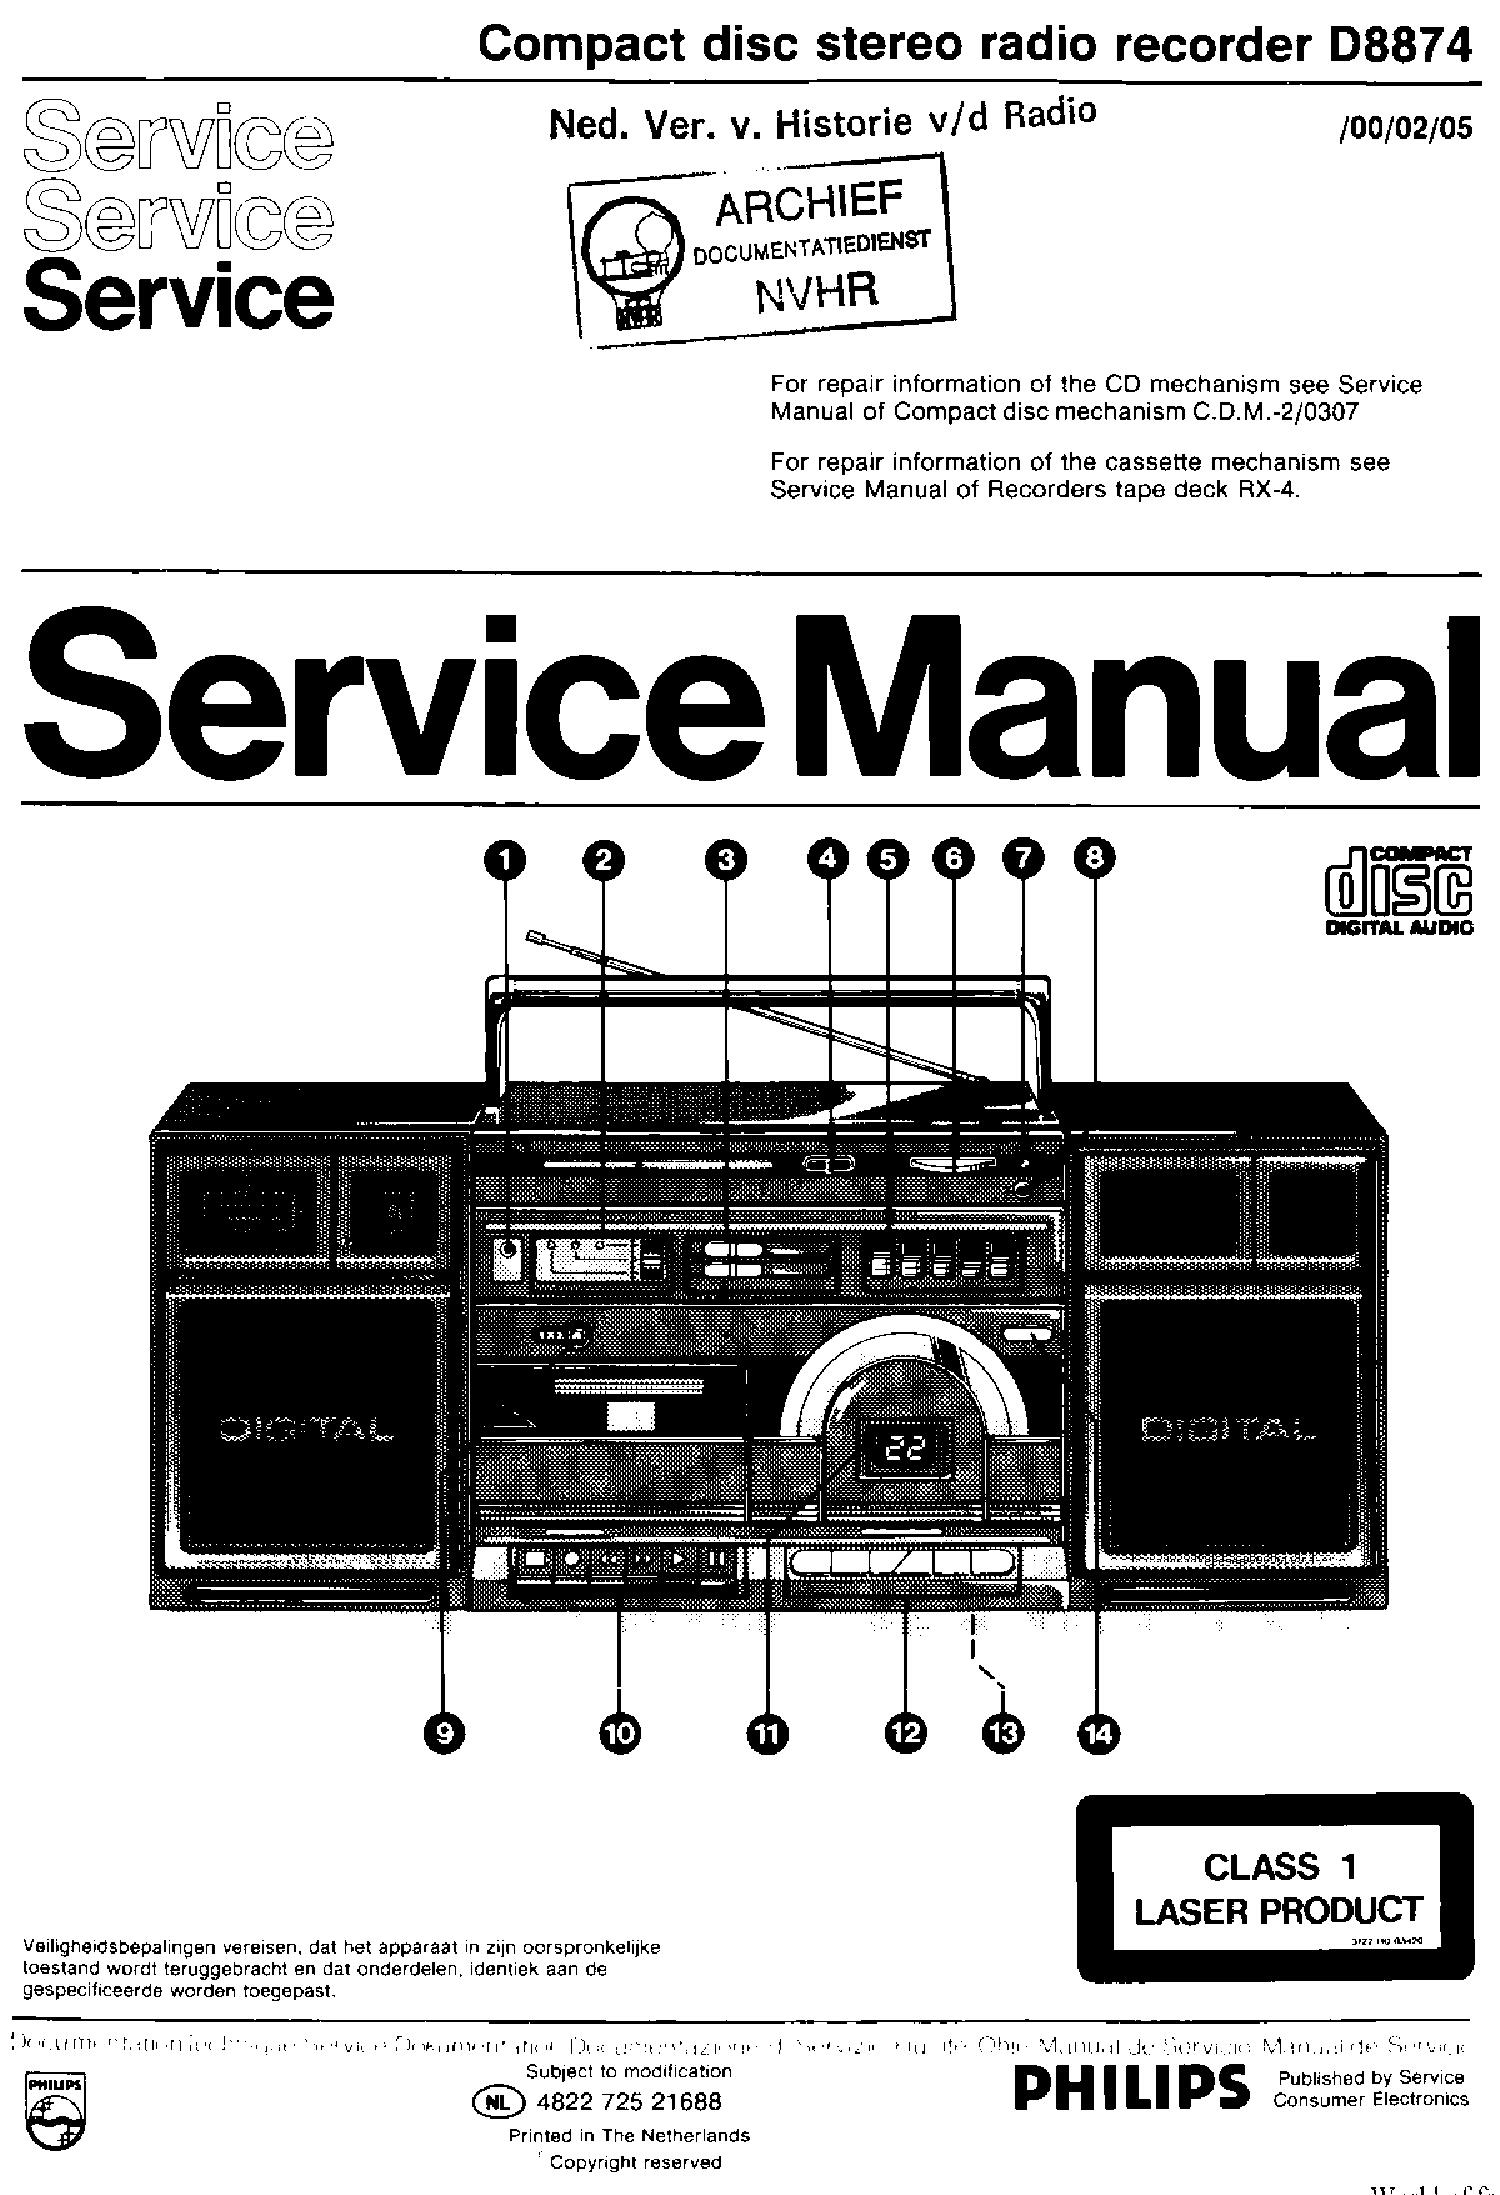 PHILIPS D8874-00-02-05 CD STEREO RADIO CASSETET RECORDER SM service manual